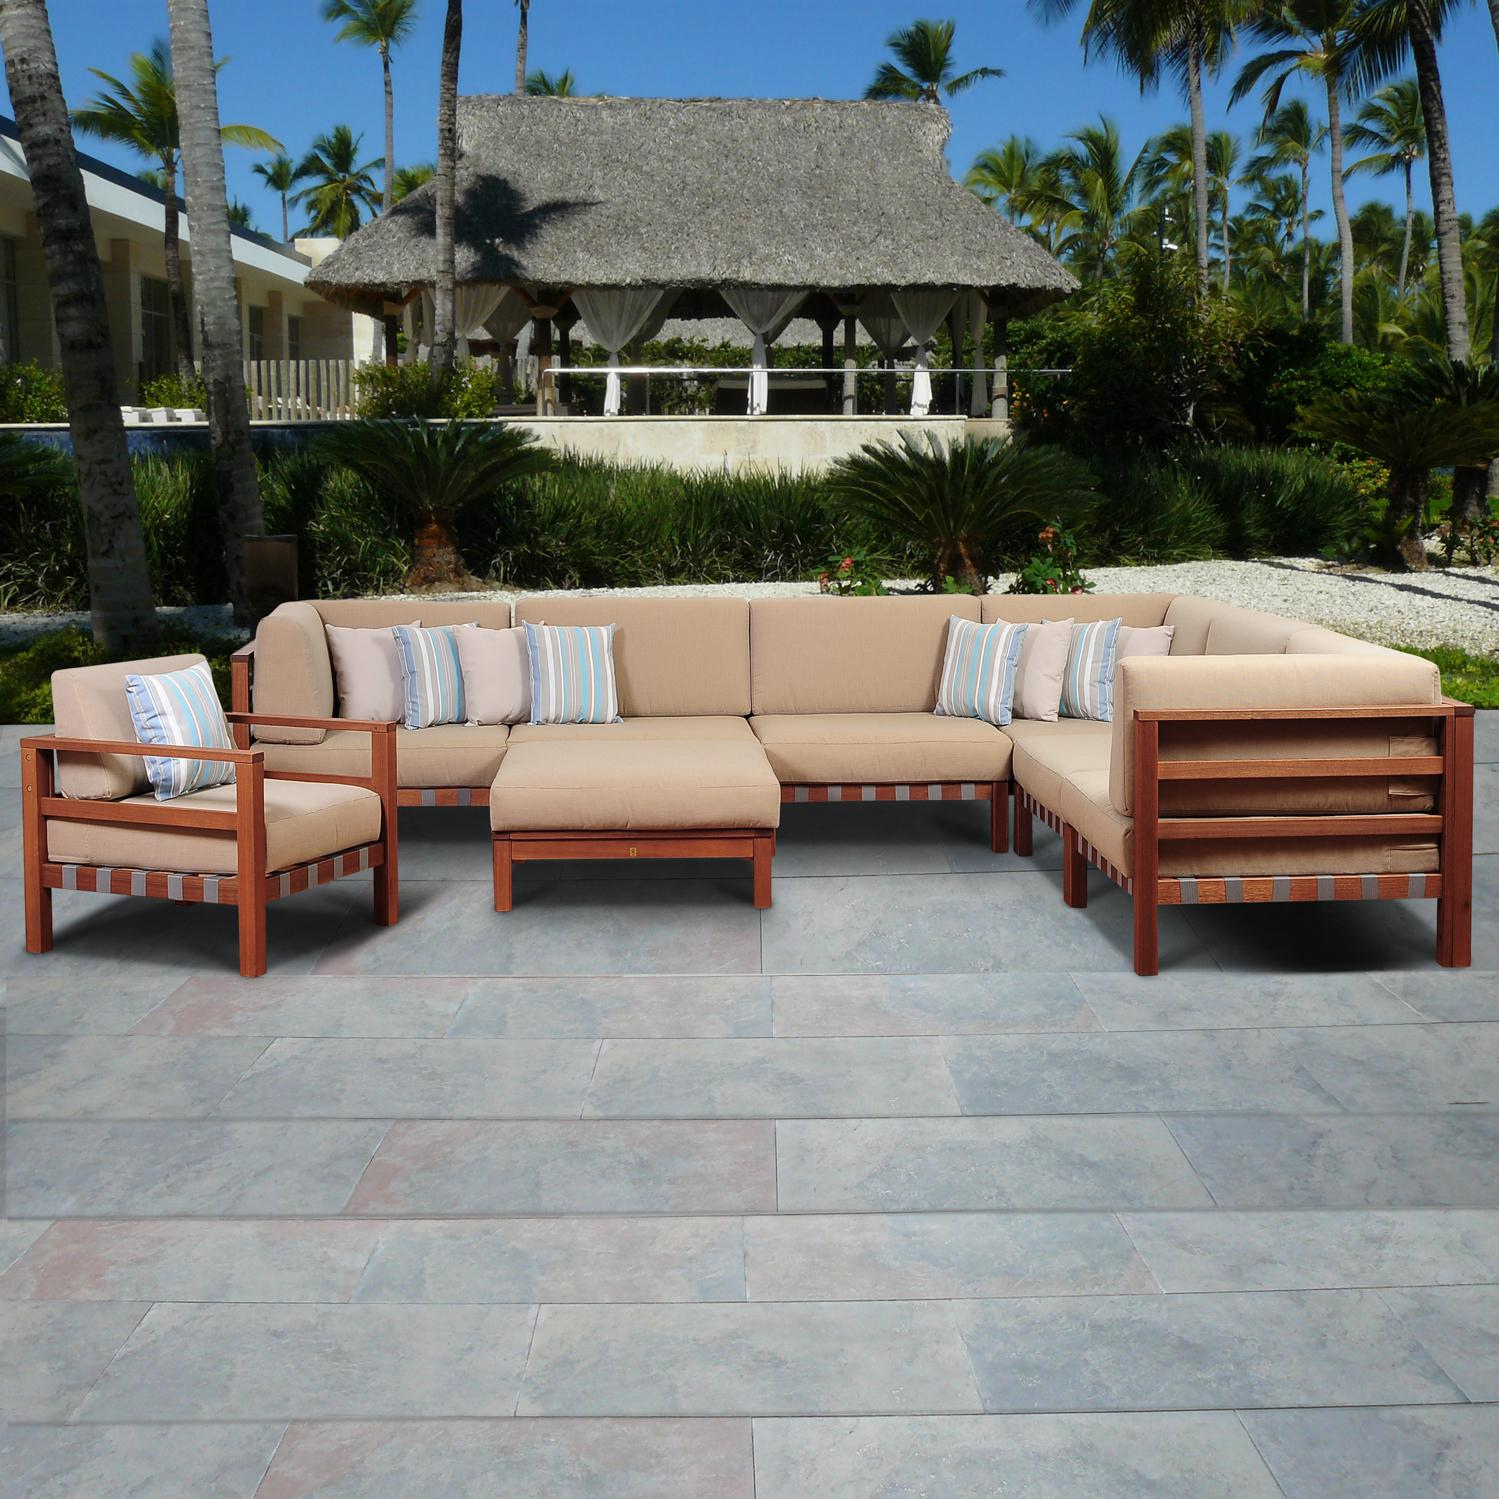 Picture of Amazonia Derbyshire 6-Person Eucalyptus Patio Sectional Set By Jamie Durie